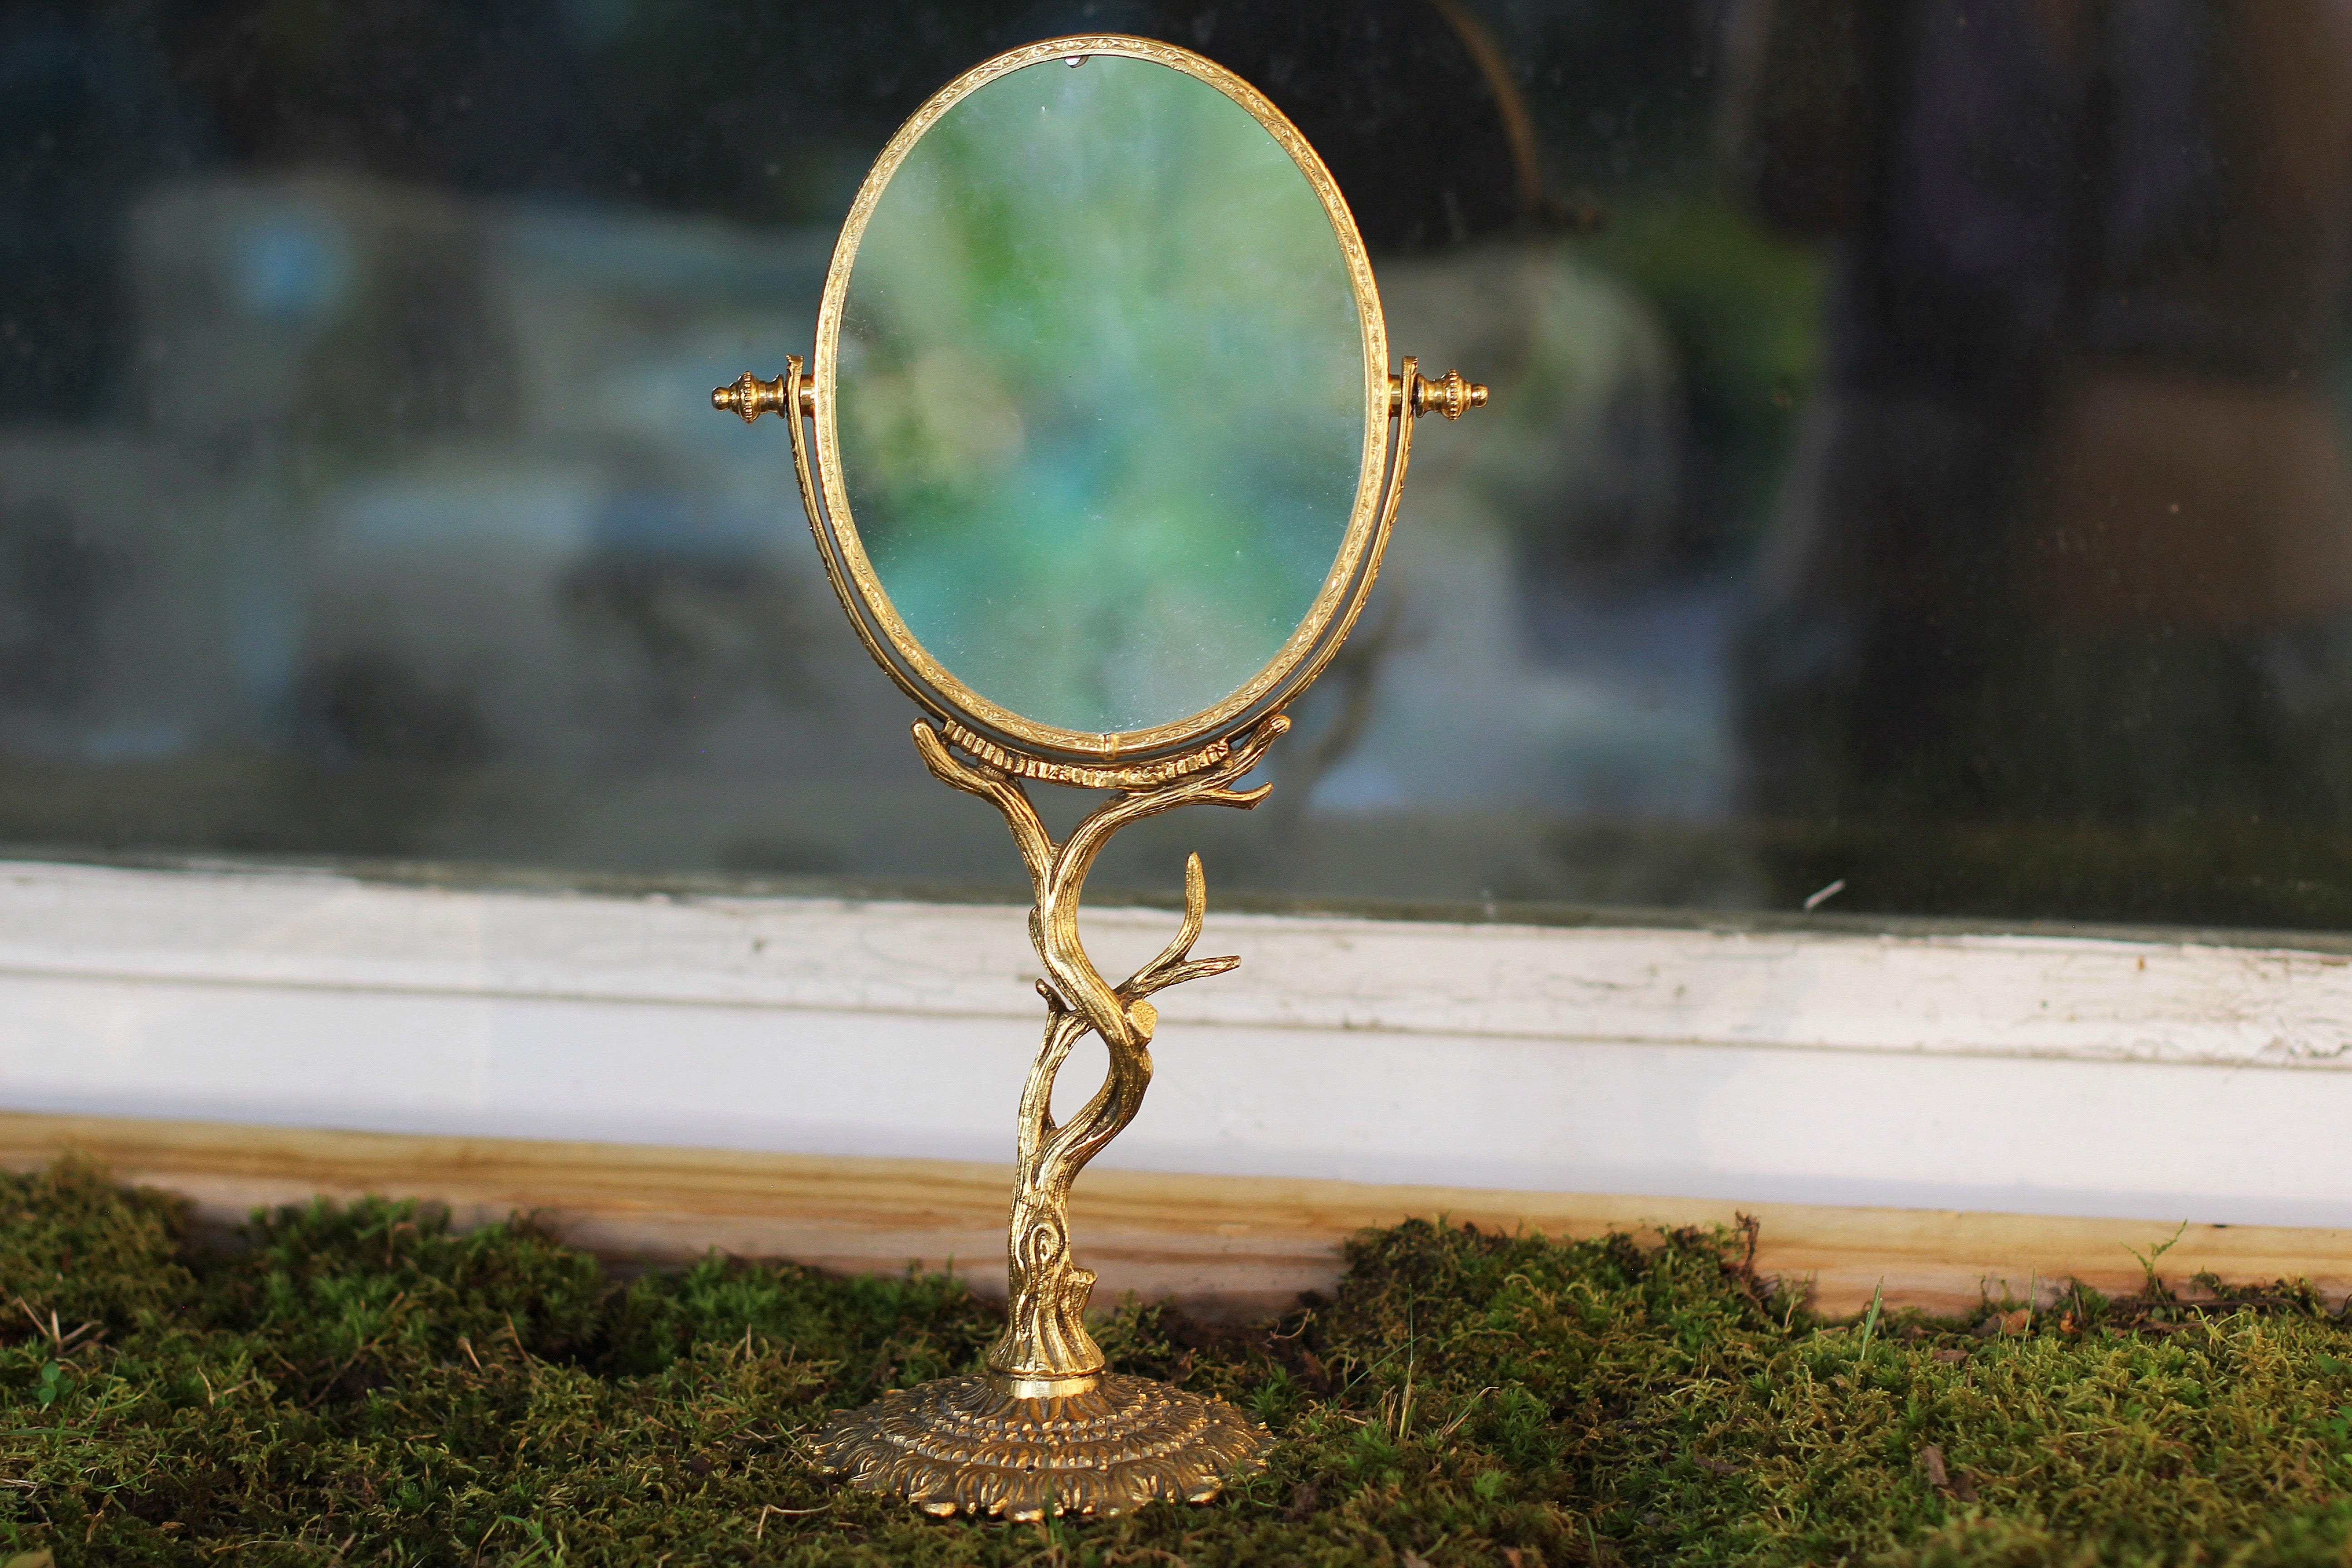 Vintage Stylebuilt Branch Vanity Pedestal Mirror Double Sided Magnifier